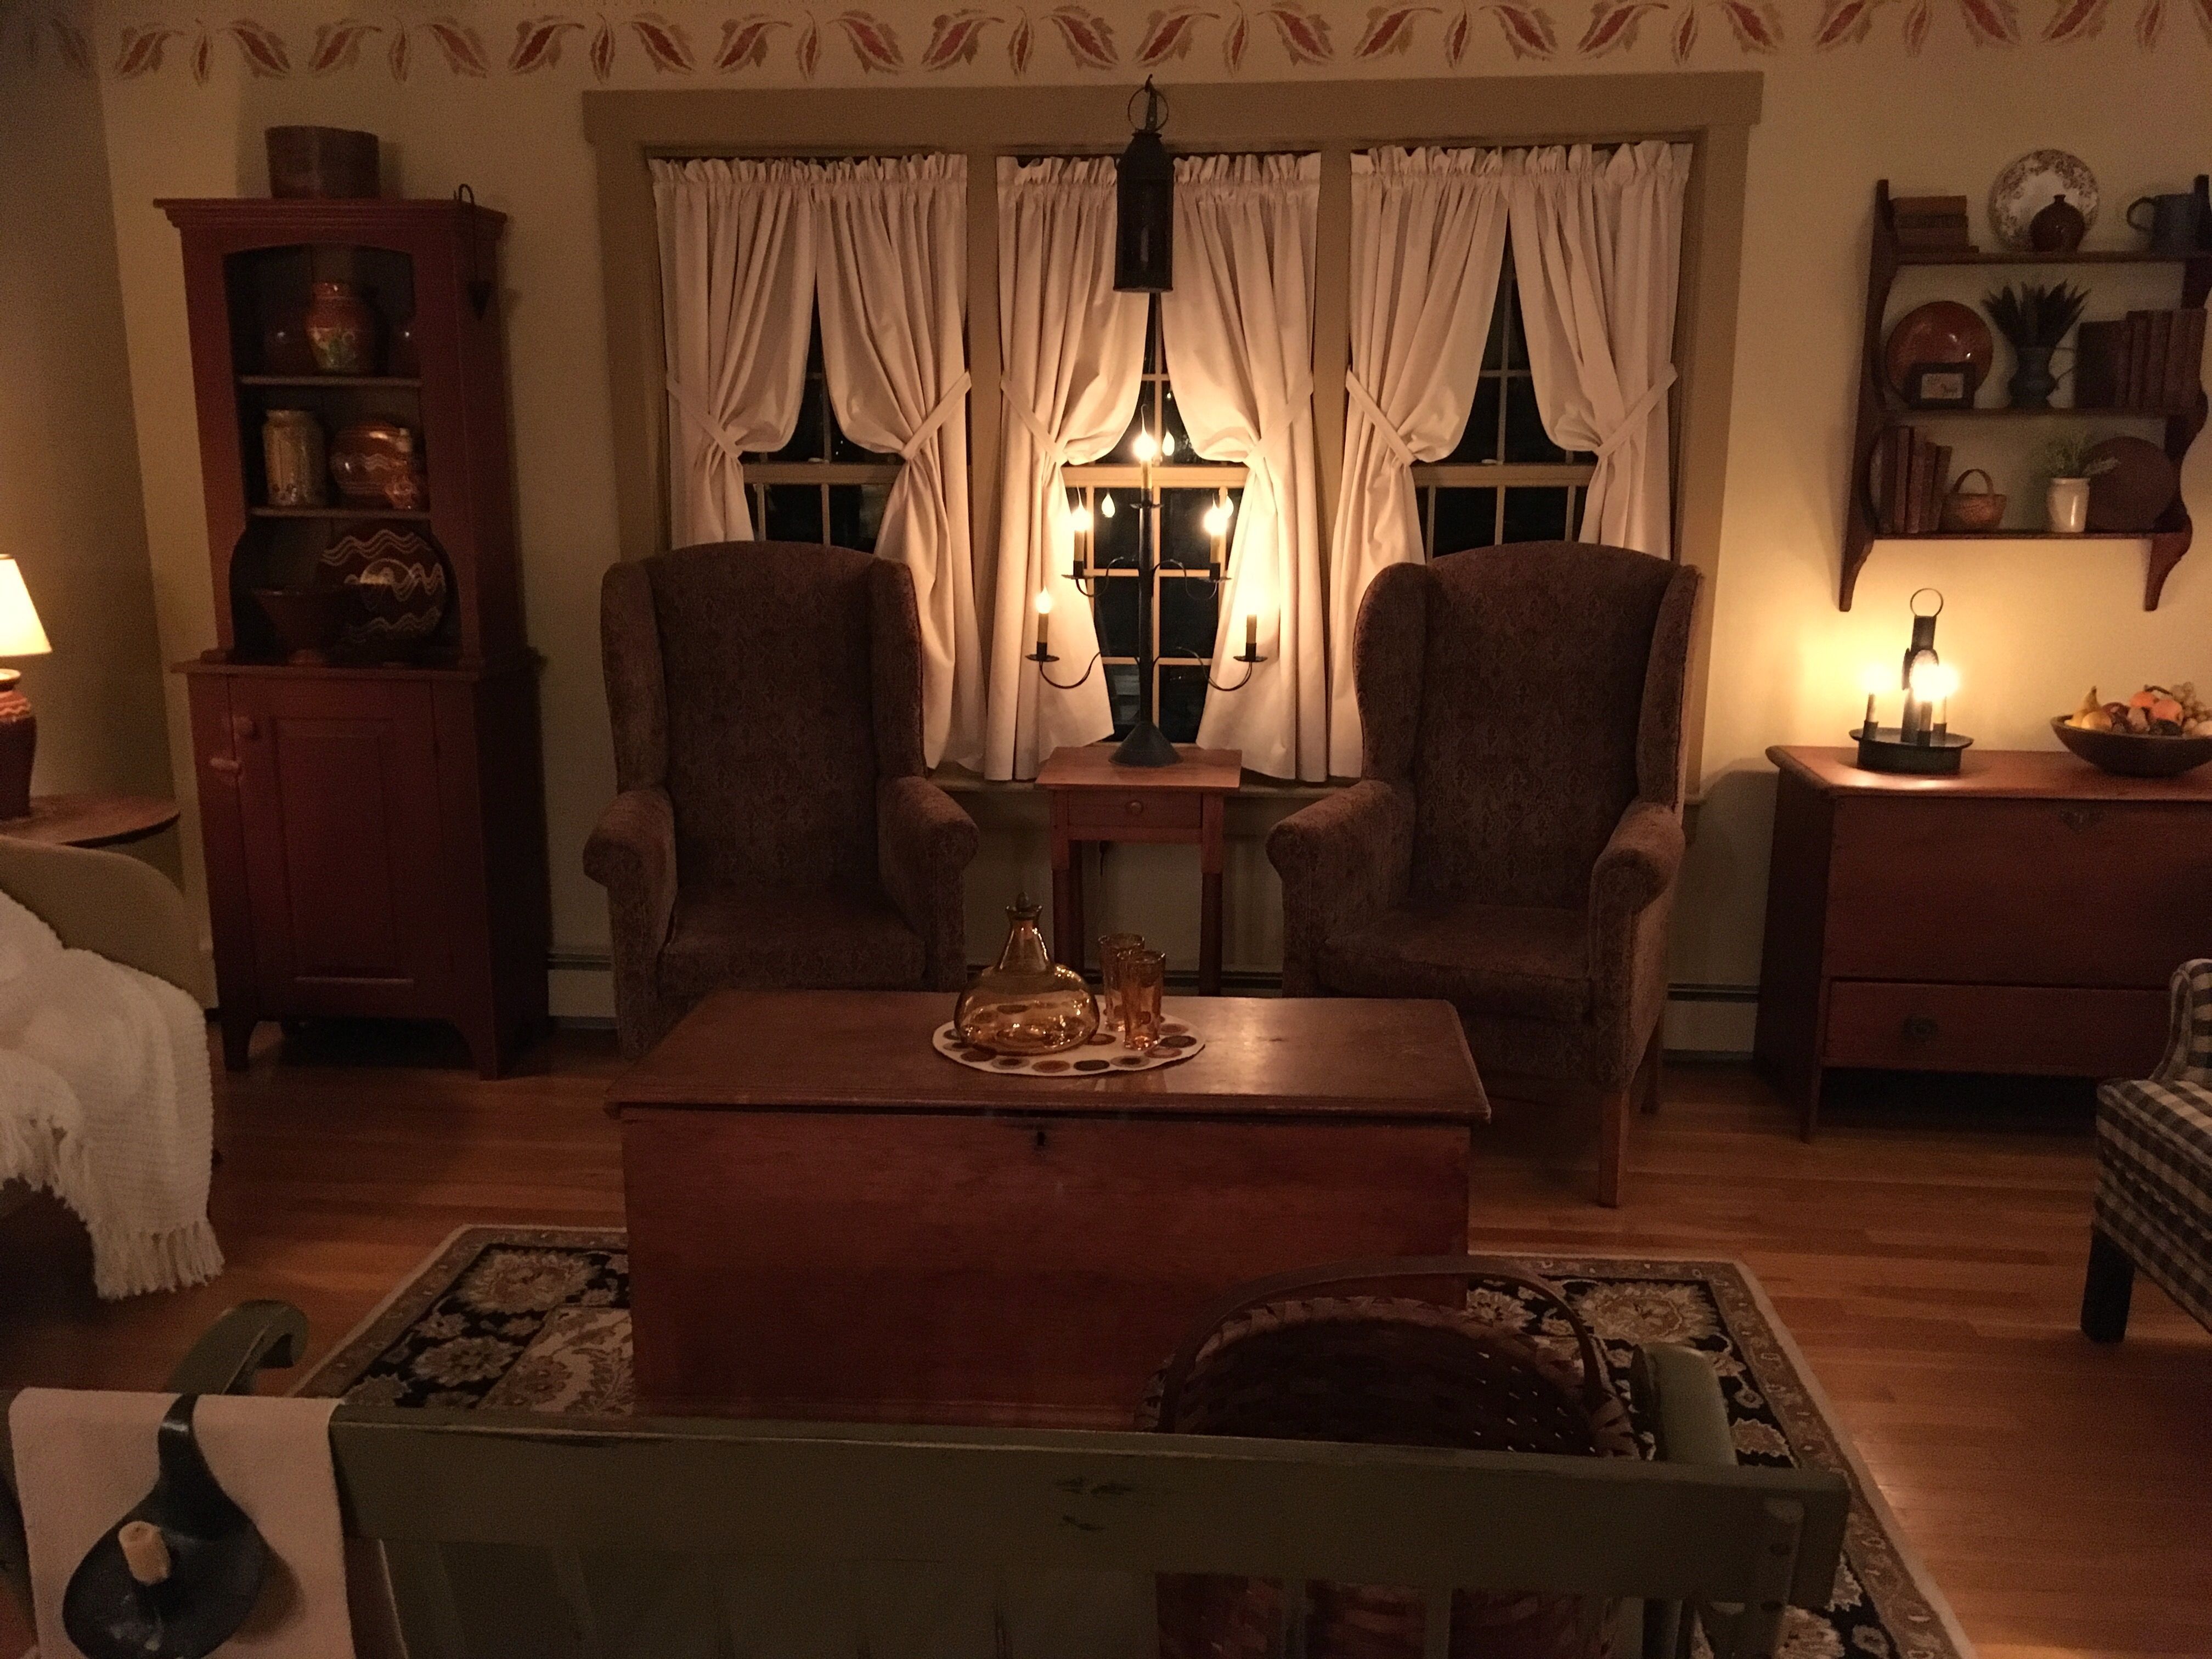 Winter 2017-2018 Behind My Red Door (With images ... on Farmhouse Curtain Ideas For Living Room  id=79171